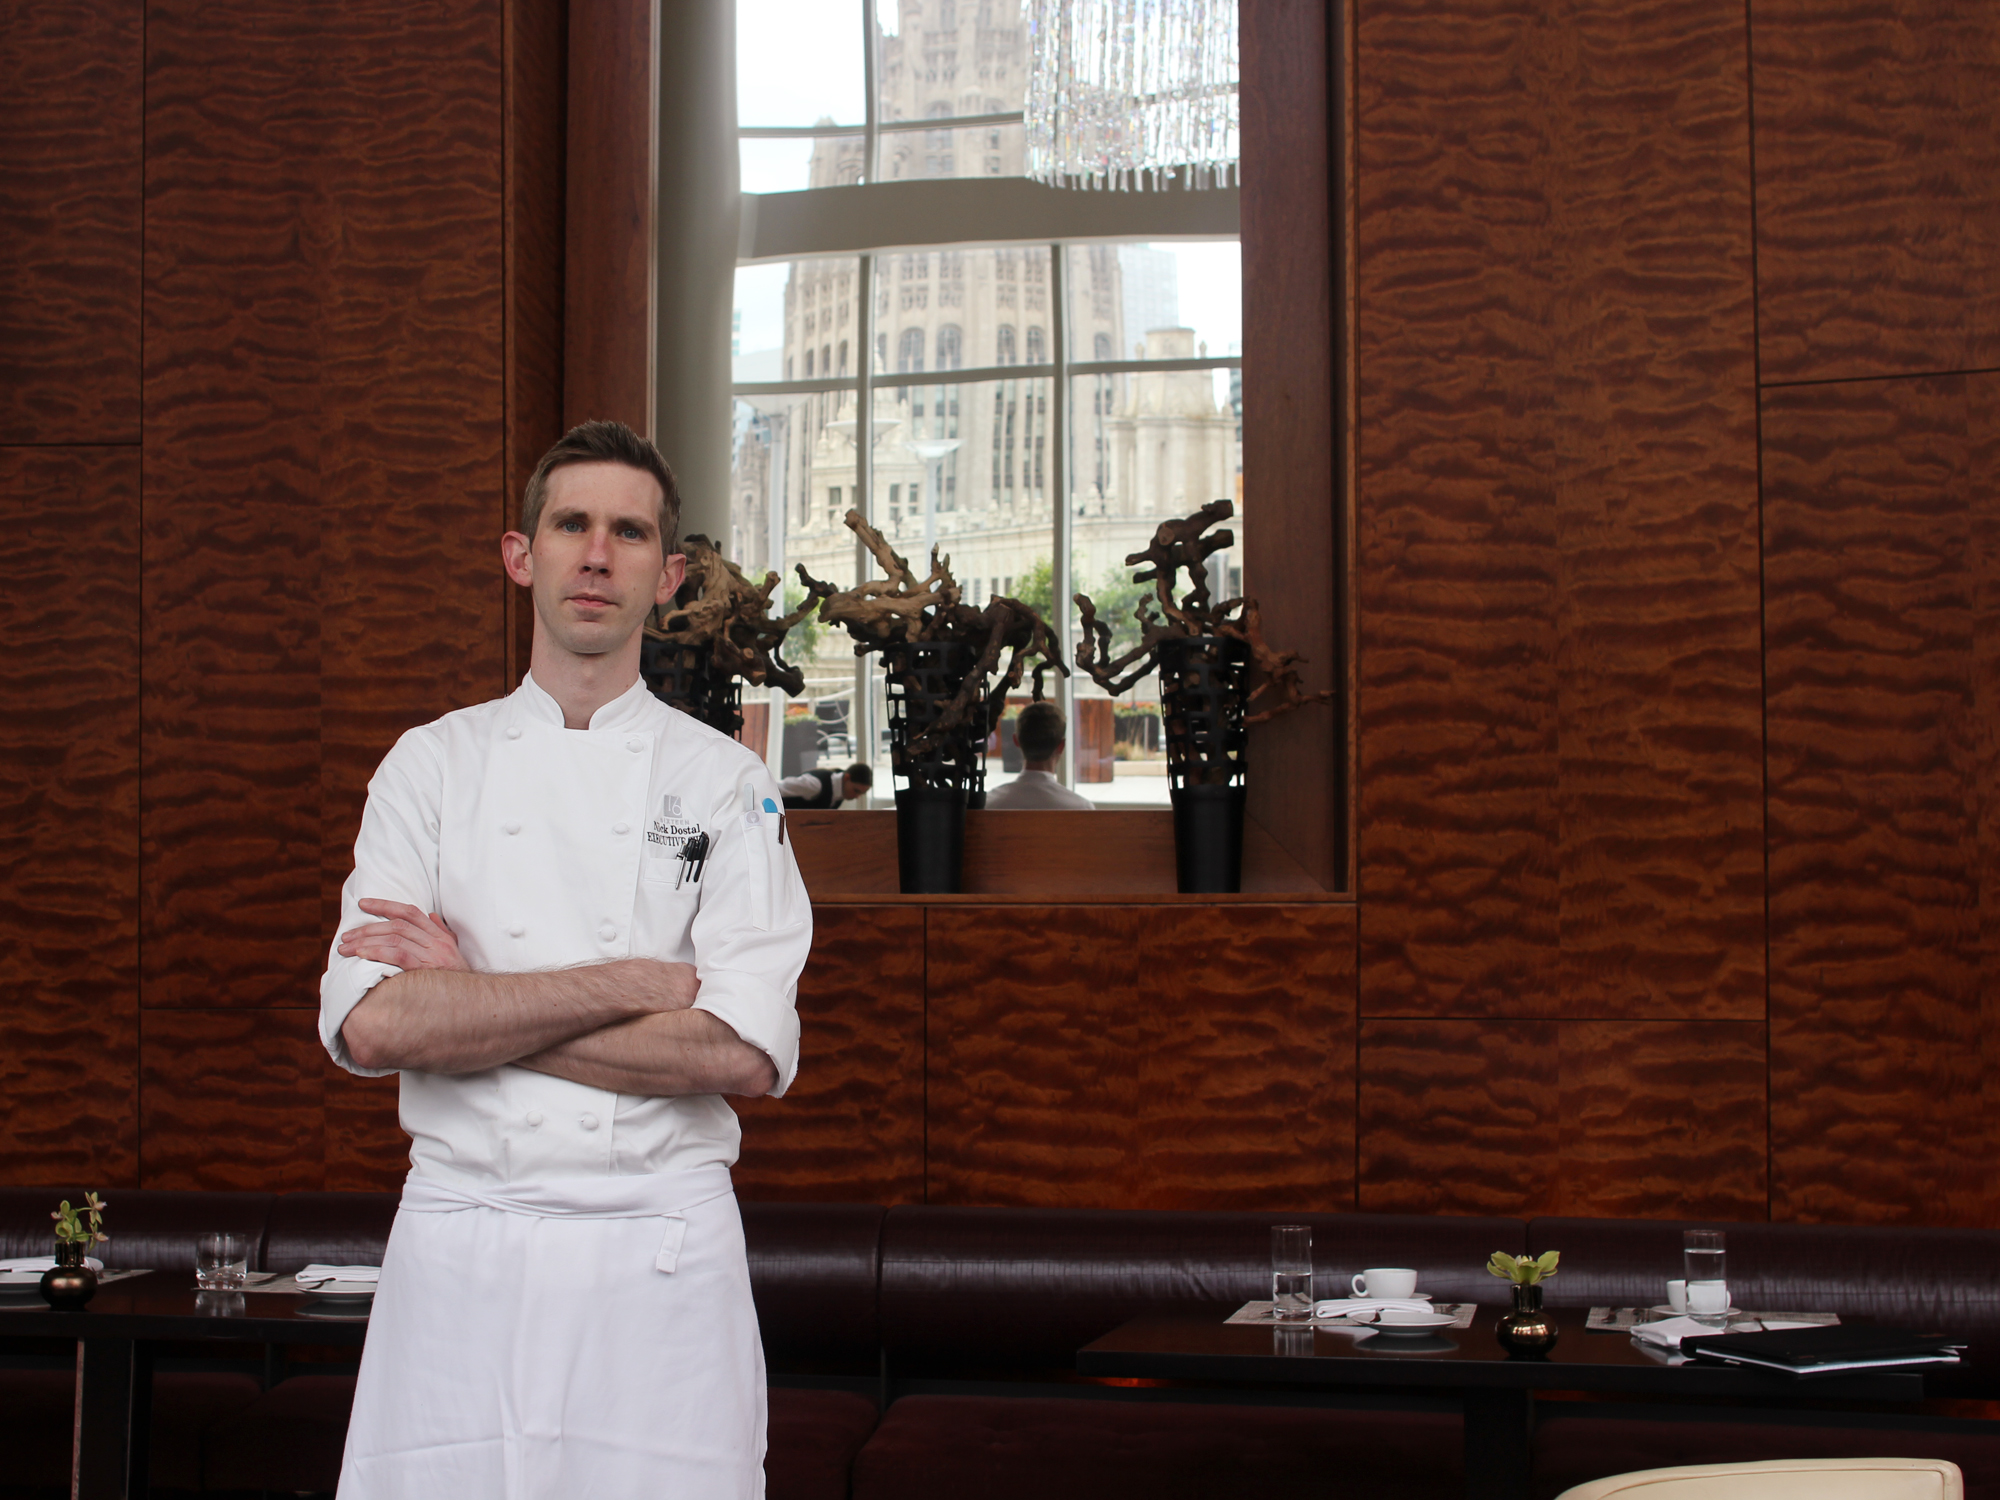 MEET CHICAGO'S NEXT GREAT CHEF. WILL ANYONE TRY HIS FOOD?